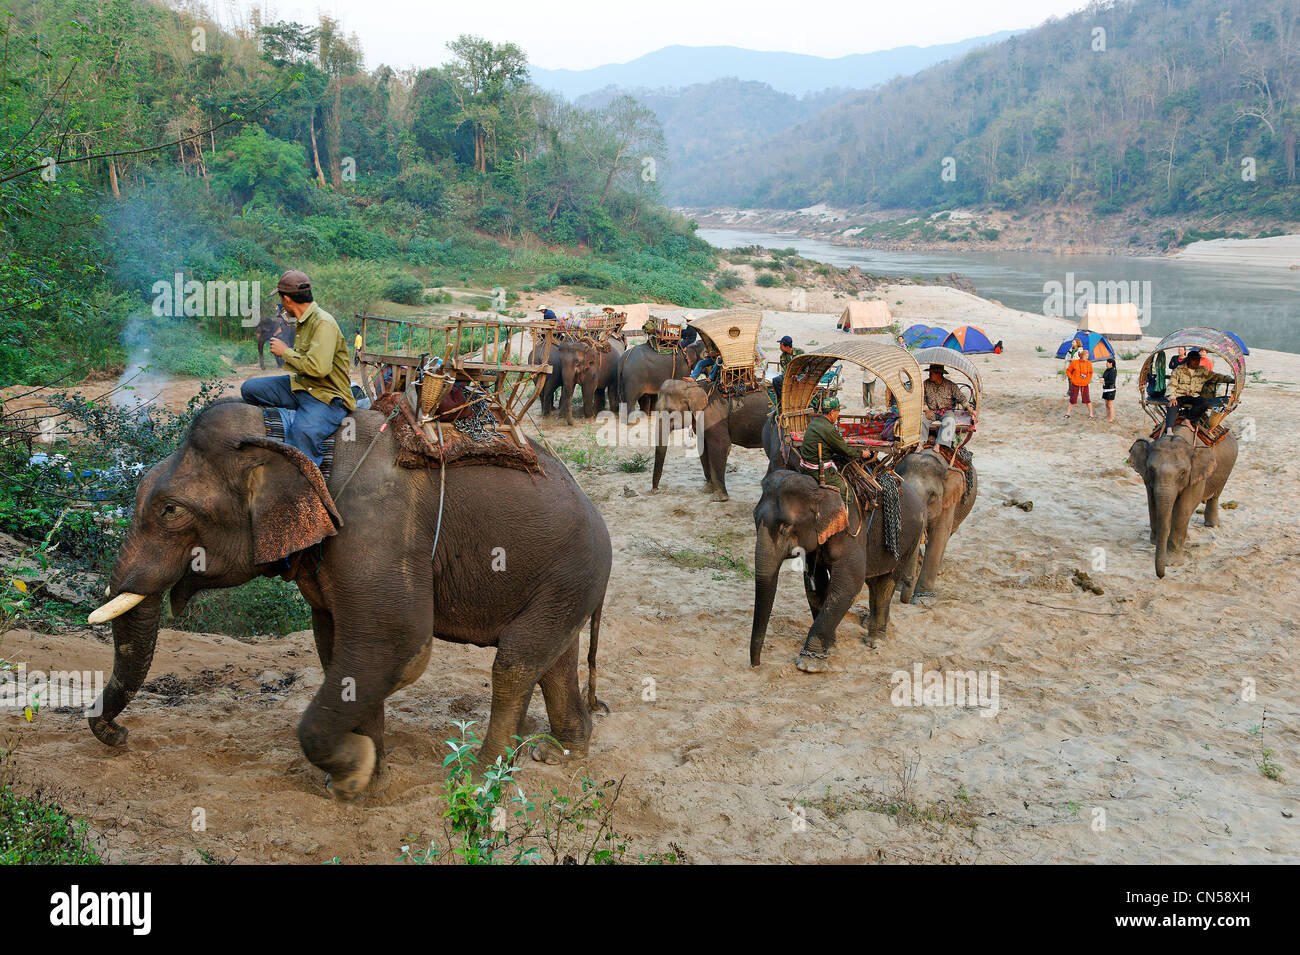 Laos, Sainyabuli Province, Mekong River, trek on elephant's back, departure of the caravan from the bivouac - Stock Image